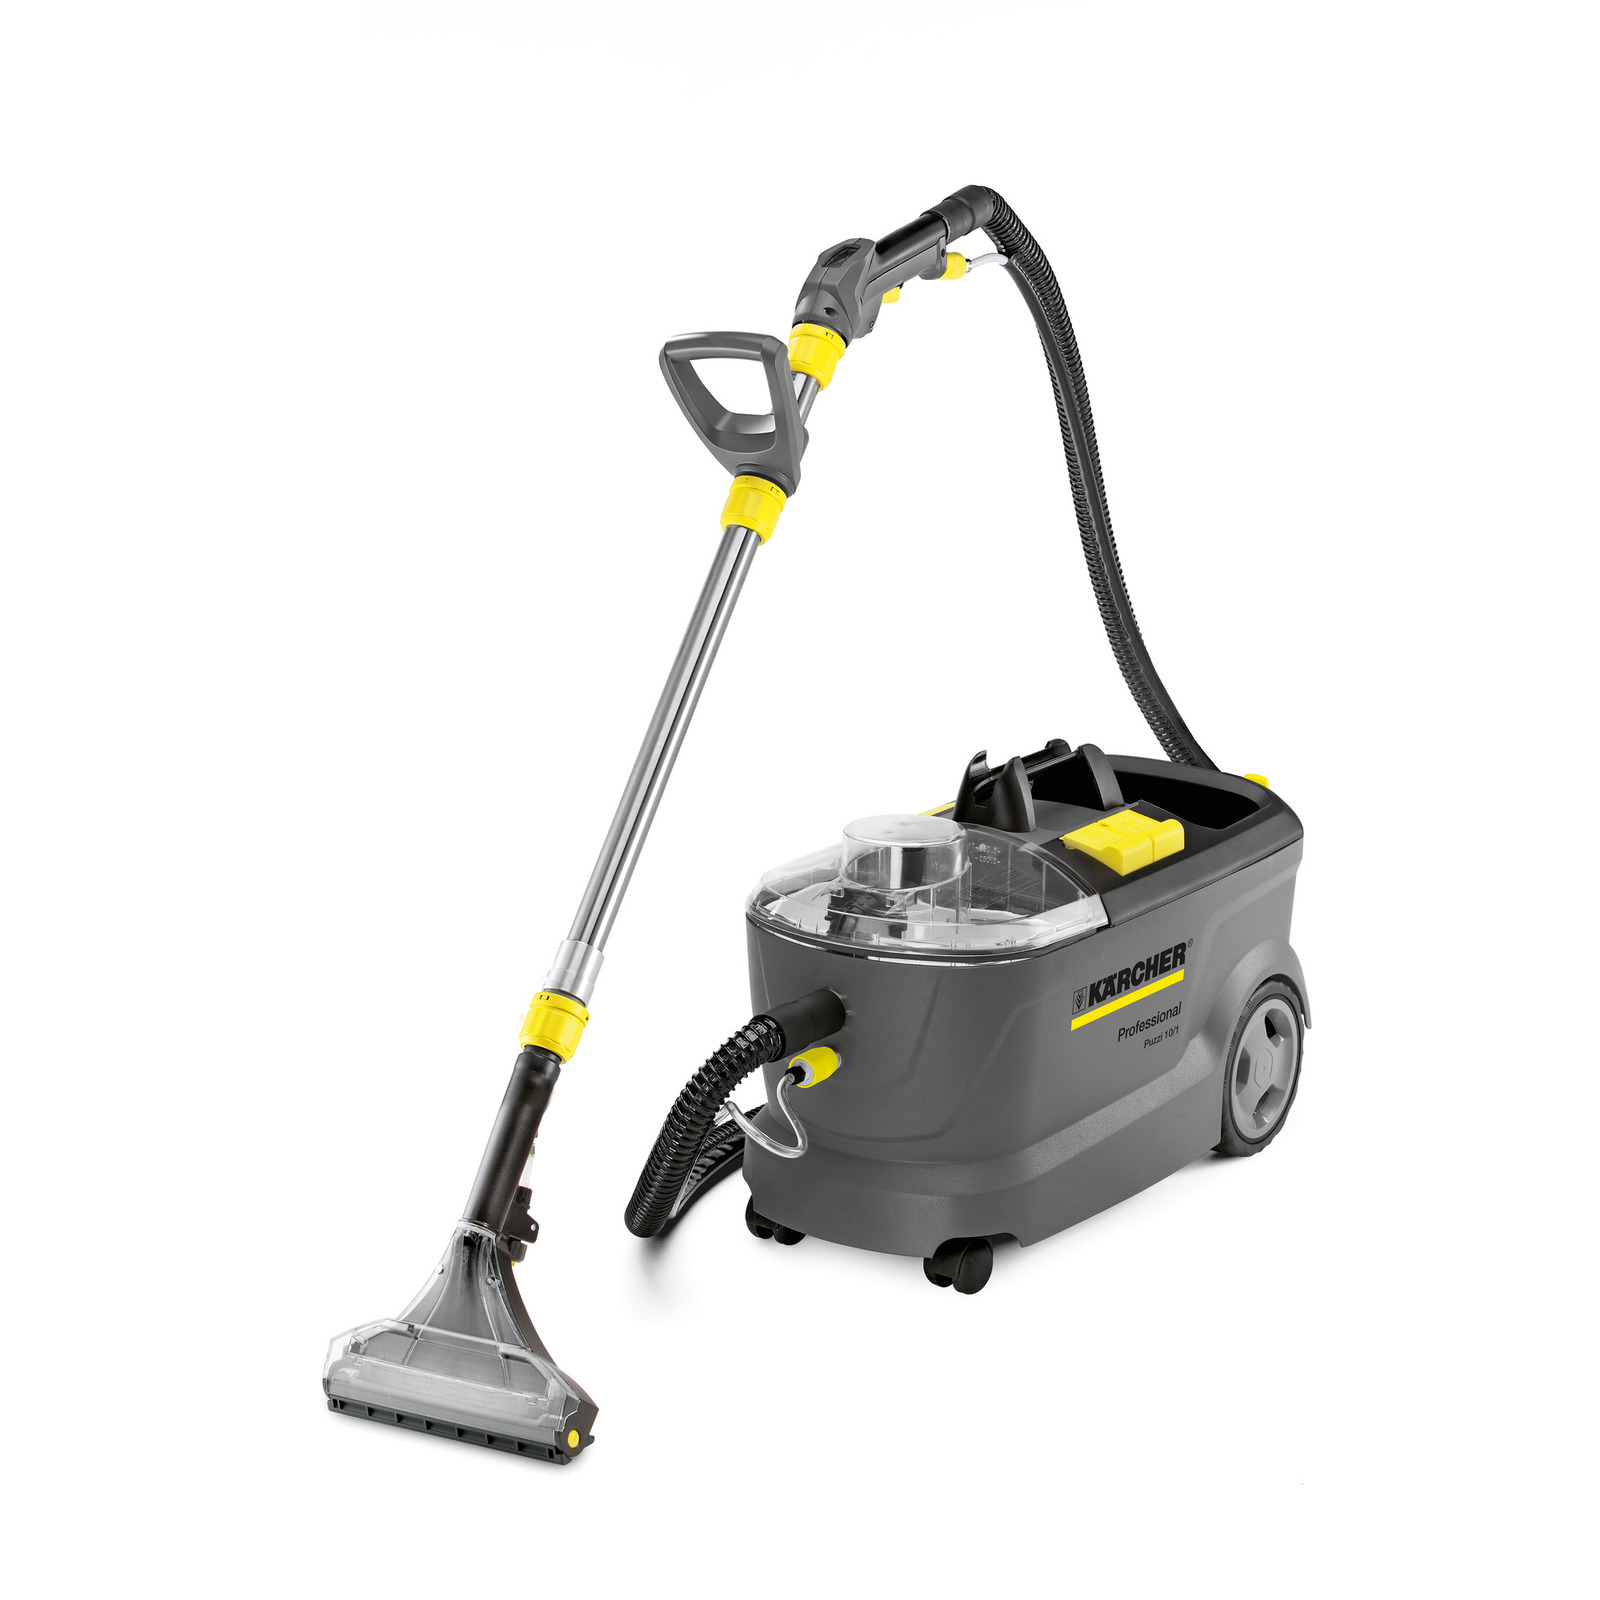 Karcher 1.100-133.0 Puzzi 10/1 Carpet and Upholstery Cleaning Machine 100  2.6 Gal 12 psi 8 ft Hose Set and Dual Tool Set FREE Shipping